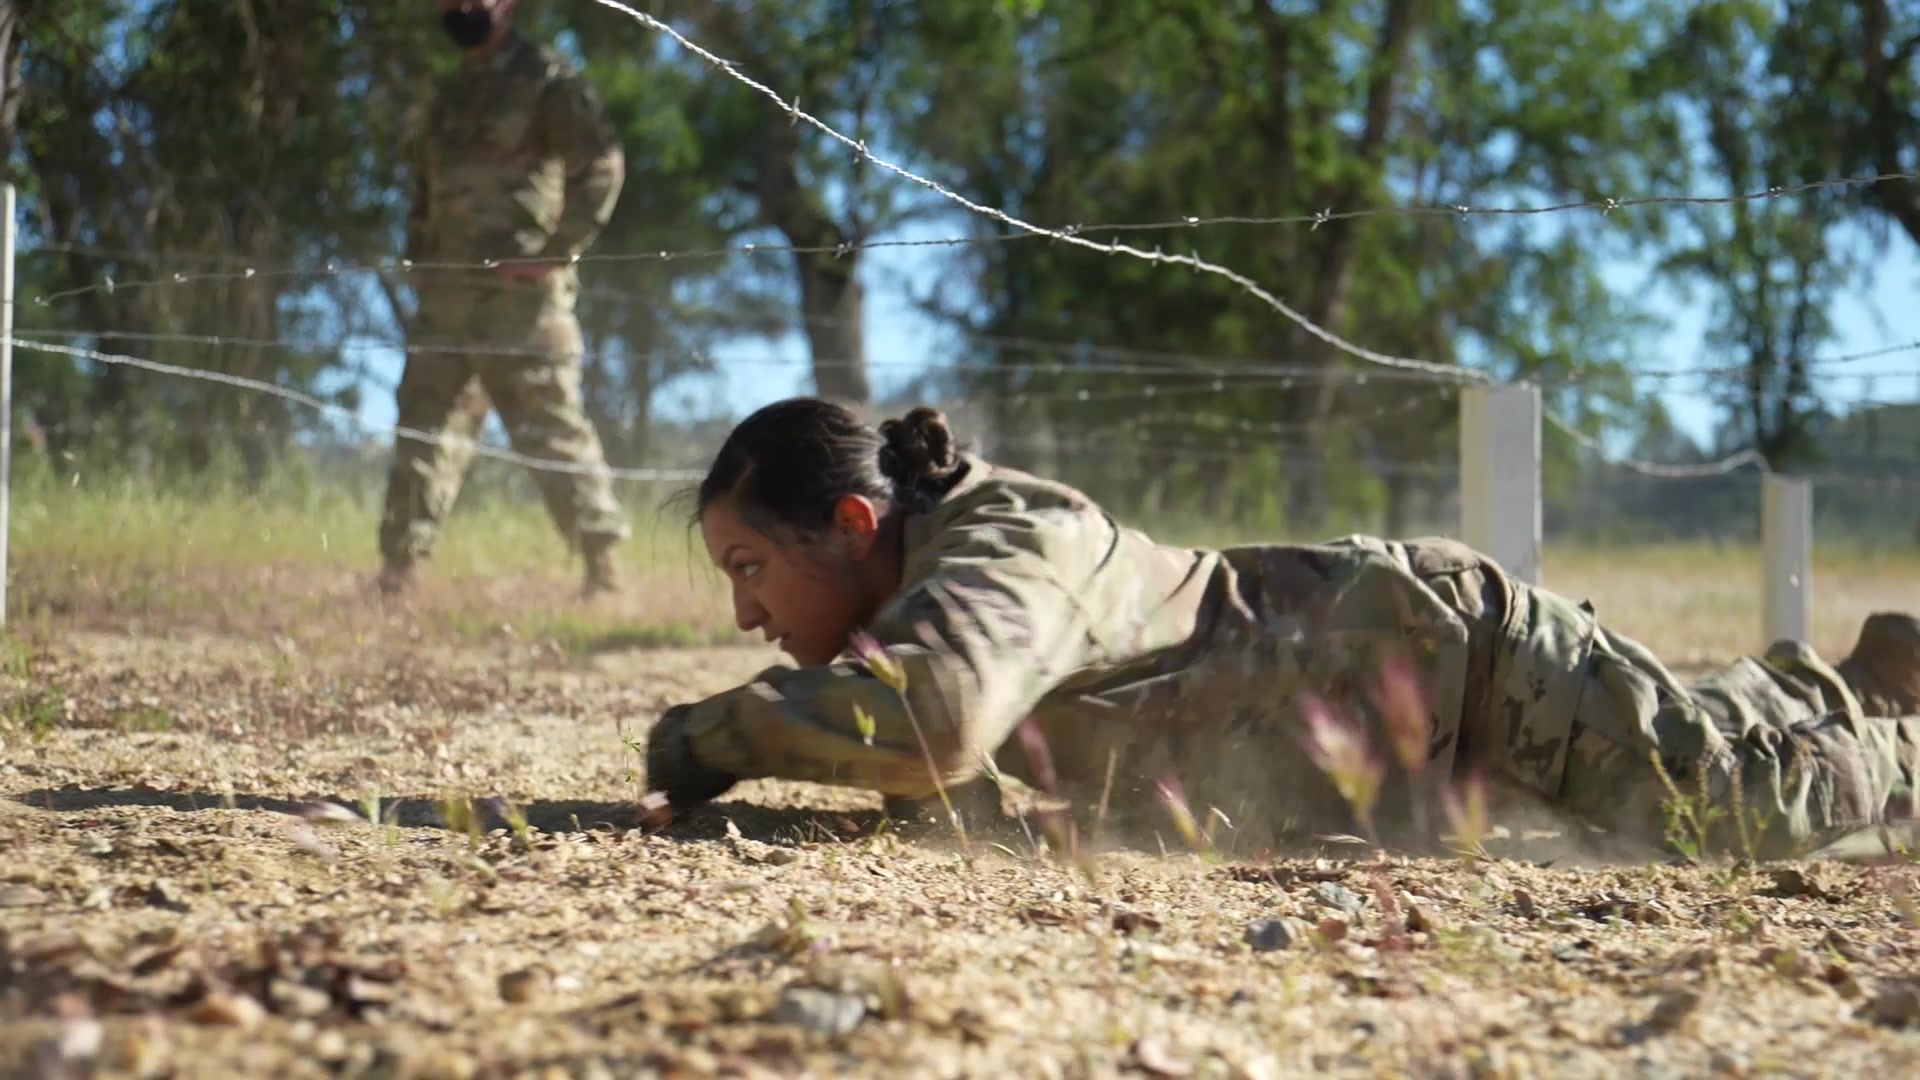 That's a wrap! Congrats to all of the competitors of the 2021 Best Warrior Competition! Enjoy a video recap of all your hard work.  WINNERS: Best NCO: Sgt. Gabriel O. Martinez, 334th QM CO Best Jr. Soldier: Spc. Logan M. Duvall, 334th QM CO Best Squad: 103rd ESC